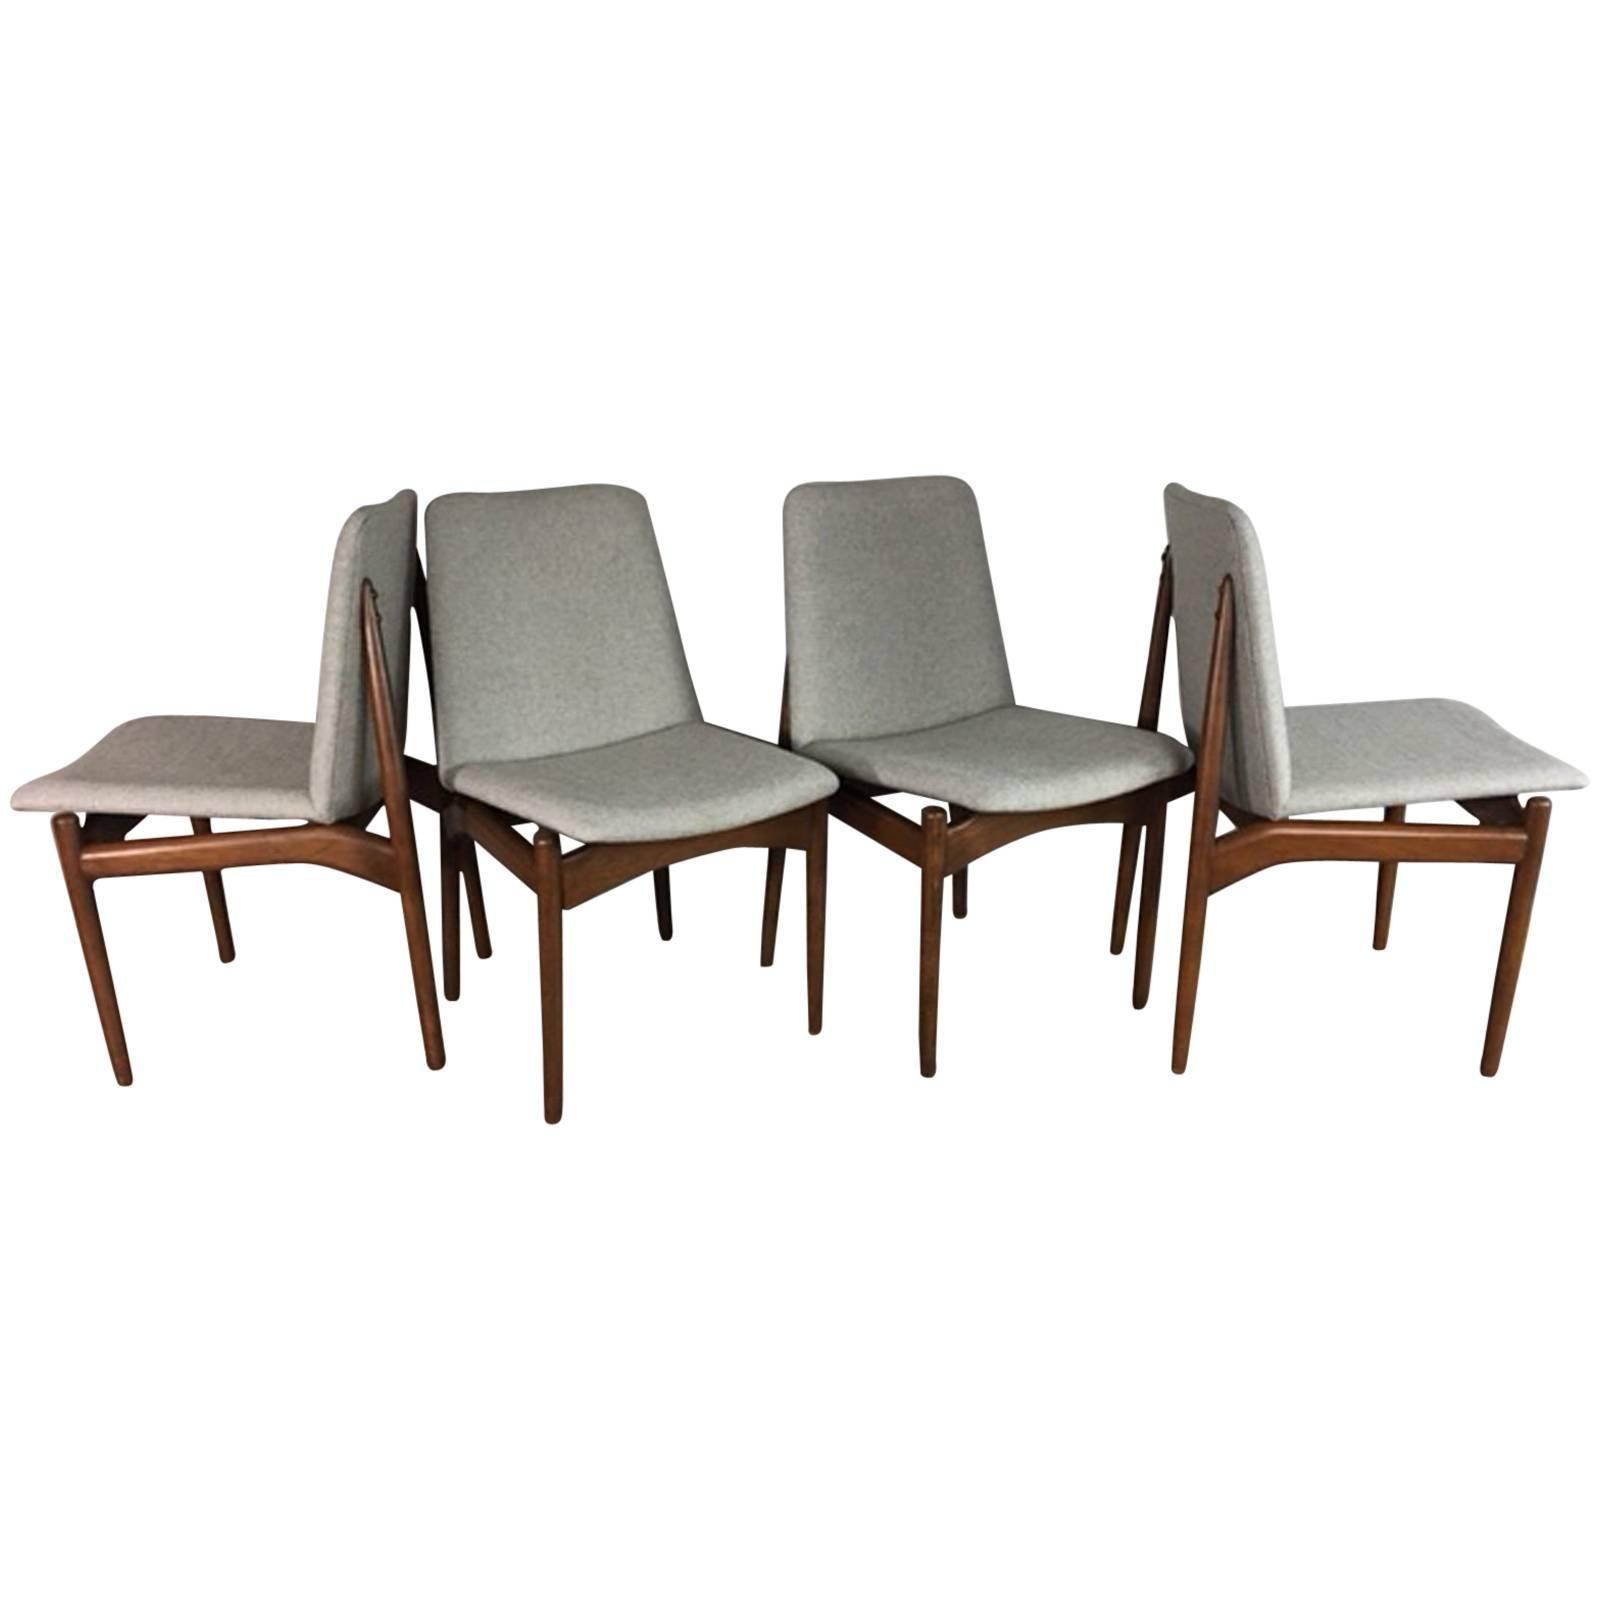 danish dining chair zero gravity canada floating chairs in walnut for sale at 1stdibs